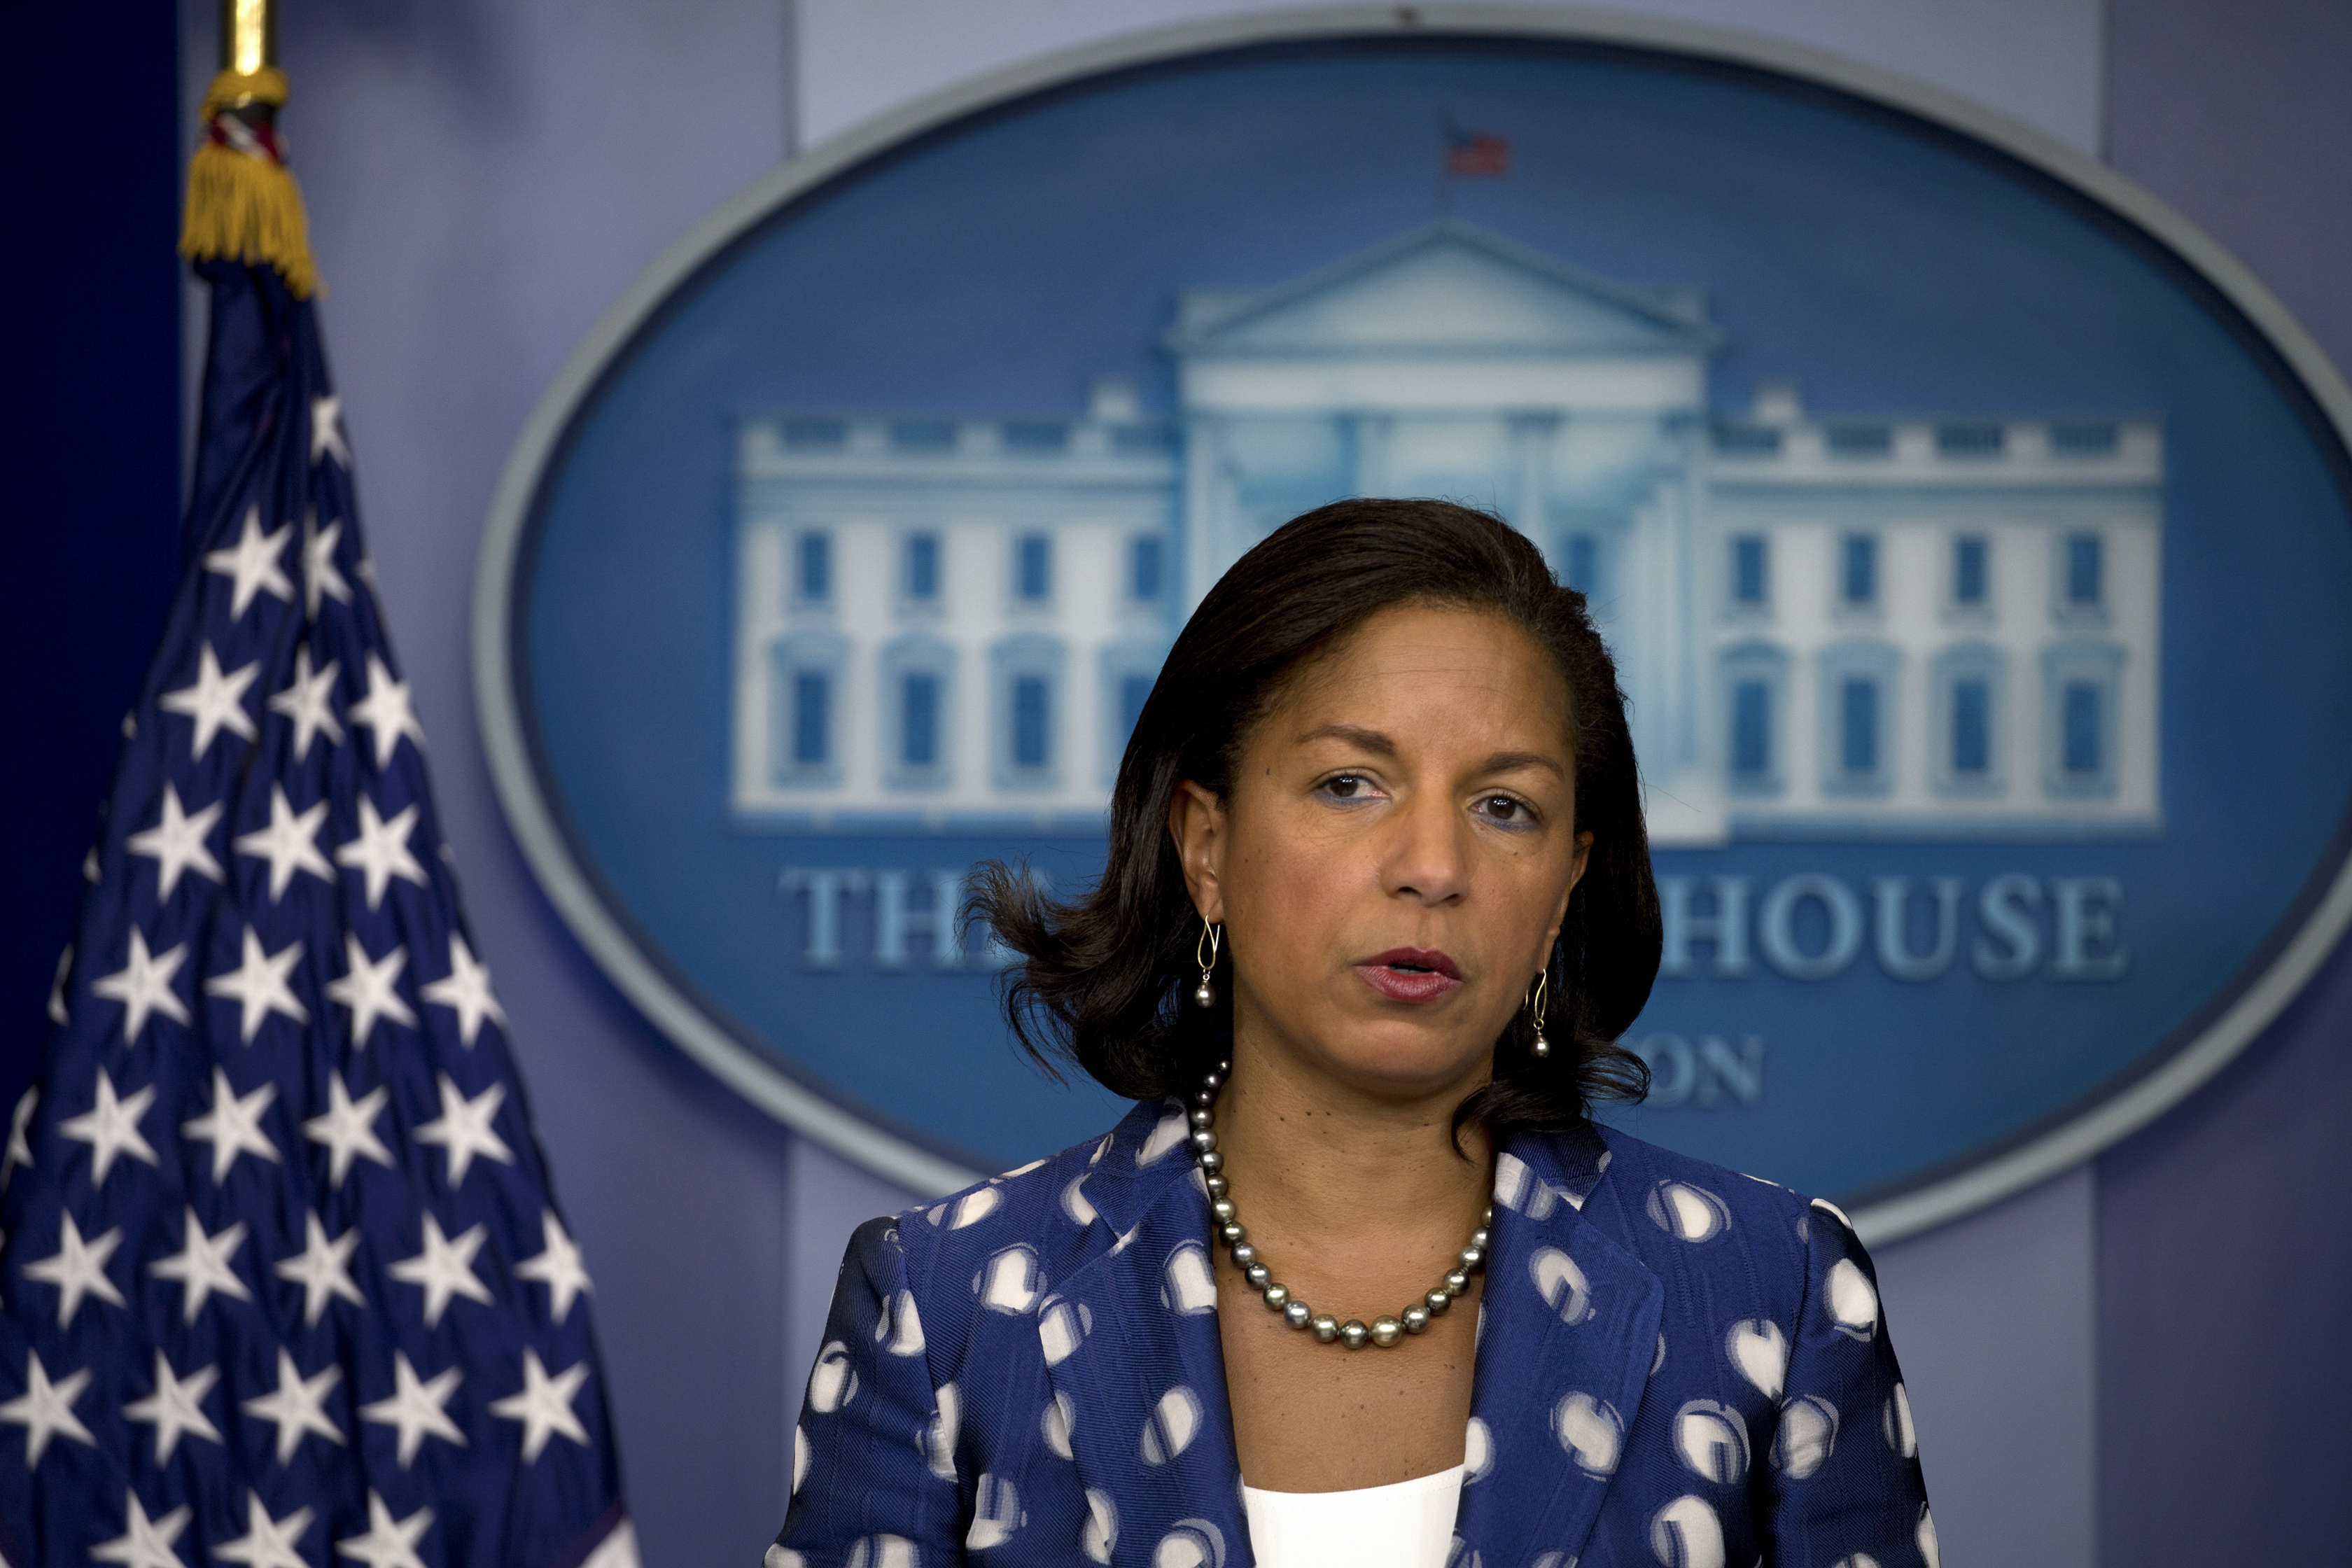 Former National Security Adviser Susan Rice, at the White House in Washington, July 22, 2015.(Stephen Crowley/The New York Times)